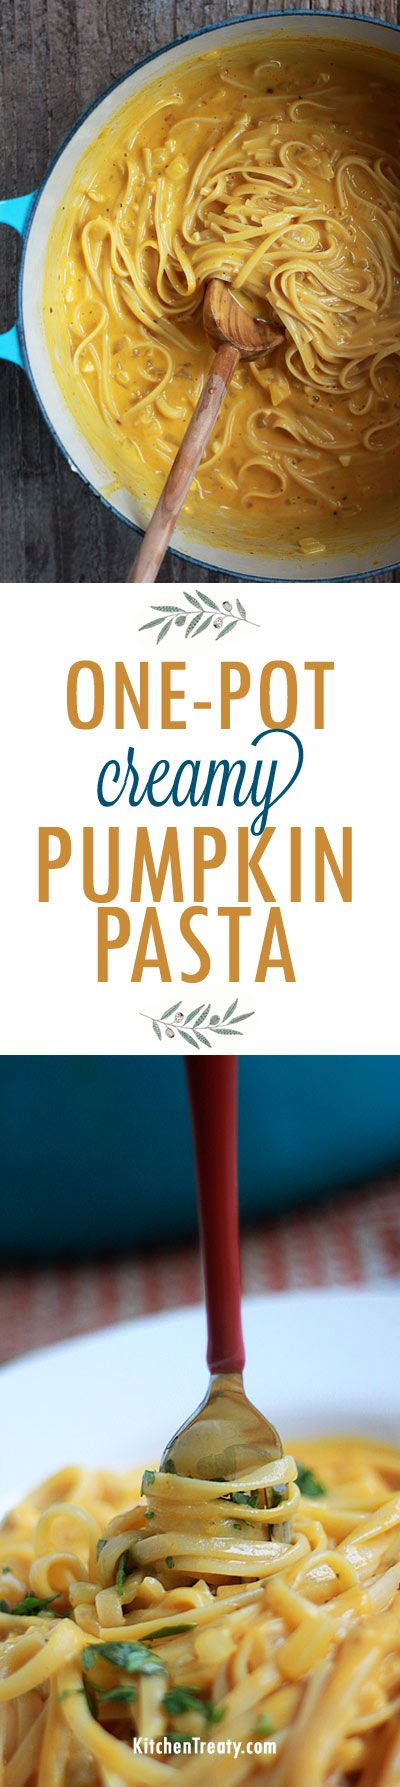 One Pot Creamy Pumpkin Pasta - Luxuriously creamy pumpkin pasta in 20 minutes! It's possible with this super-simple vegetarian one-pot pasta recipe.